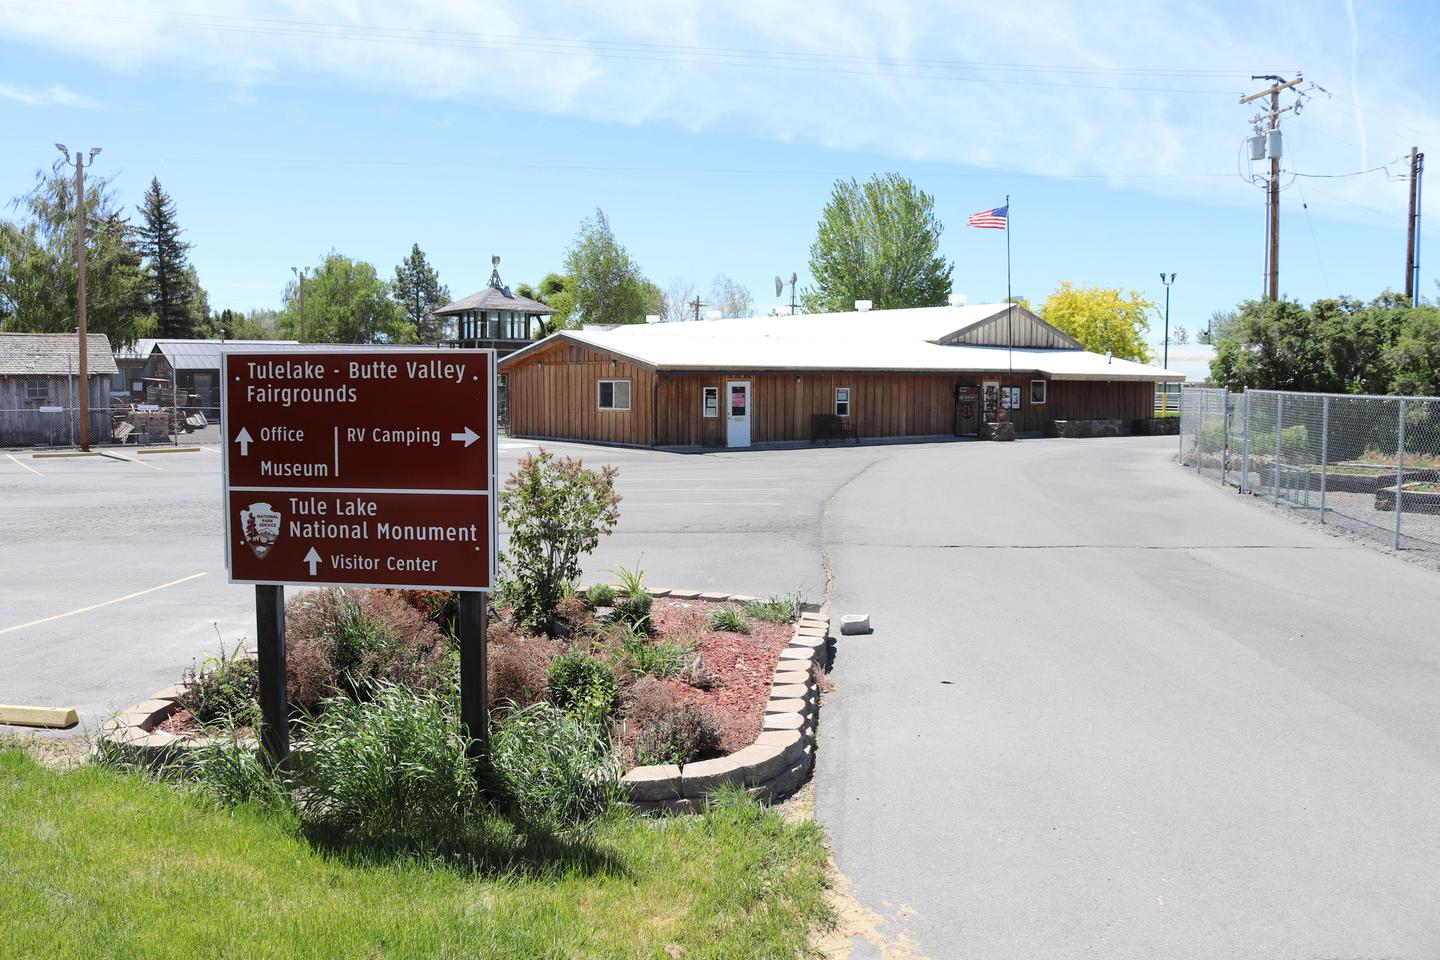 Tule Lake National Monument Visitor CenterVisitor center sign with building in the background